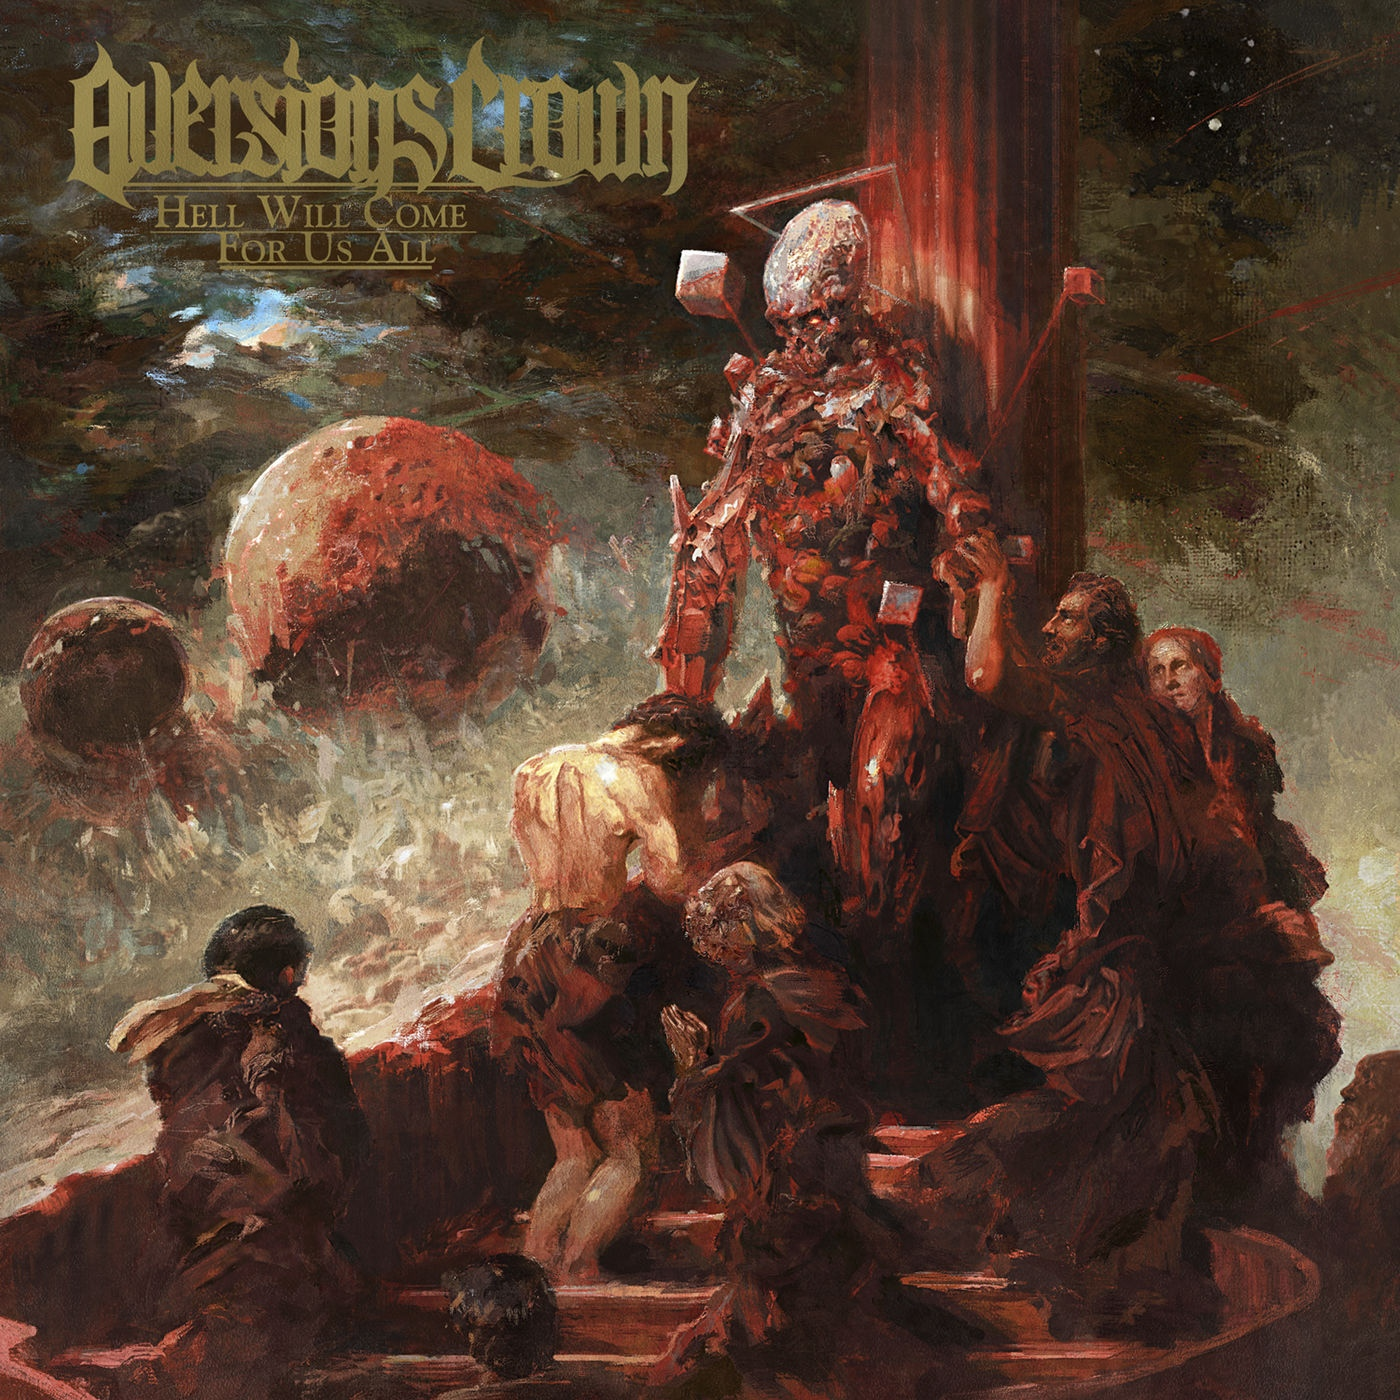 Aversions Crown - Born in the Gutter [single] (2020)